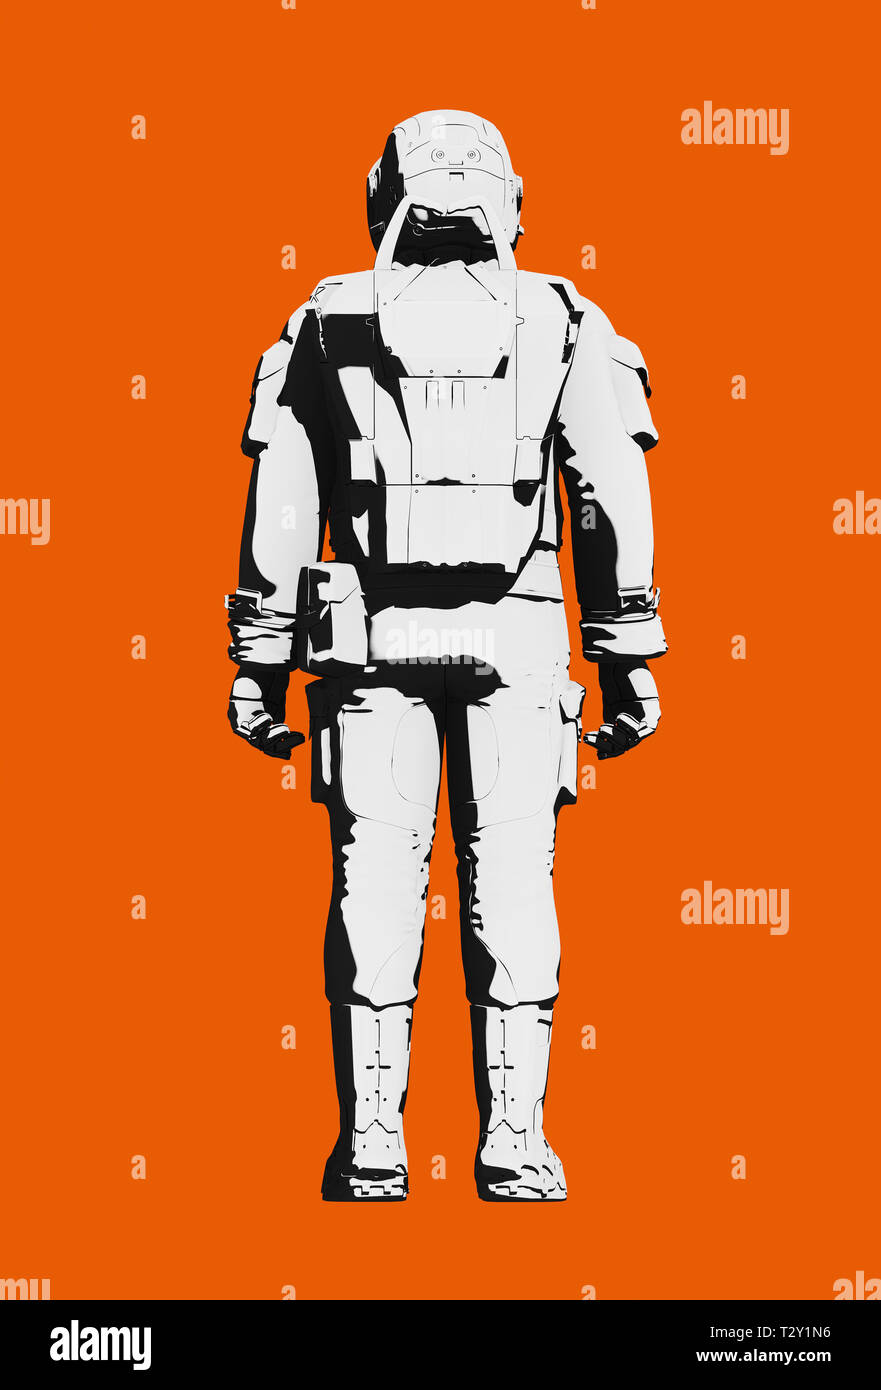 Astronaut space suit for extravehicular activity on Mars or other planet, comfortable design. Black and white on orange background. Rear view, line ar Stock Photo